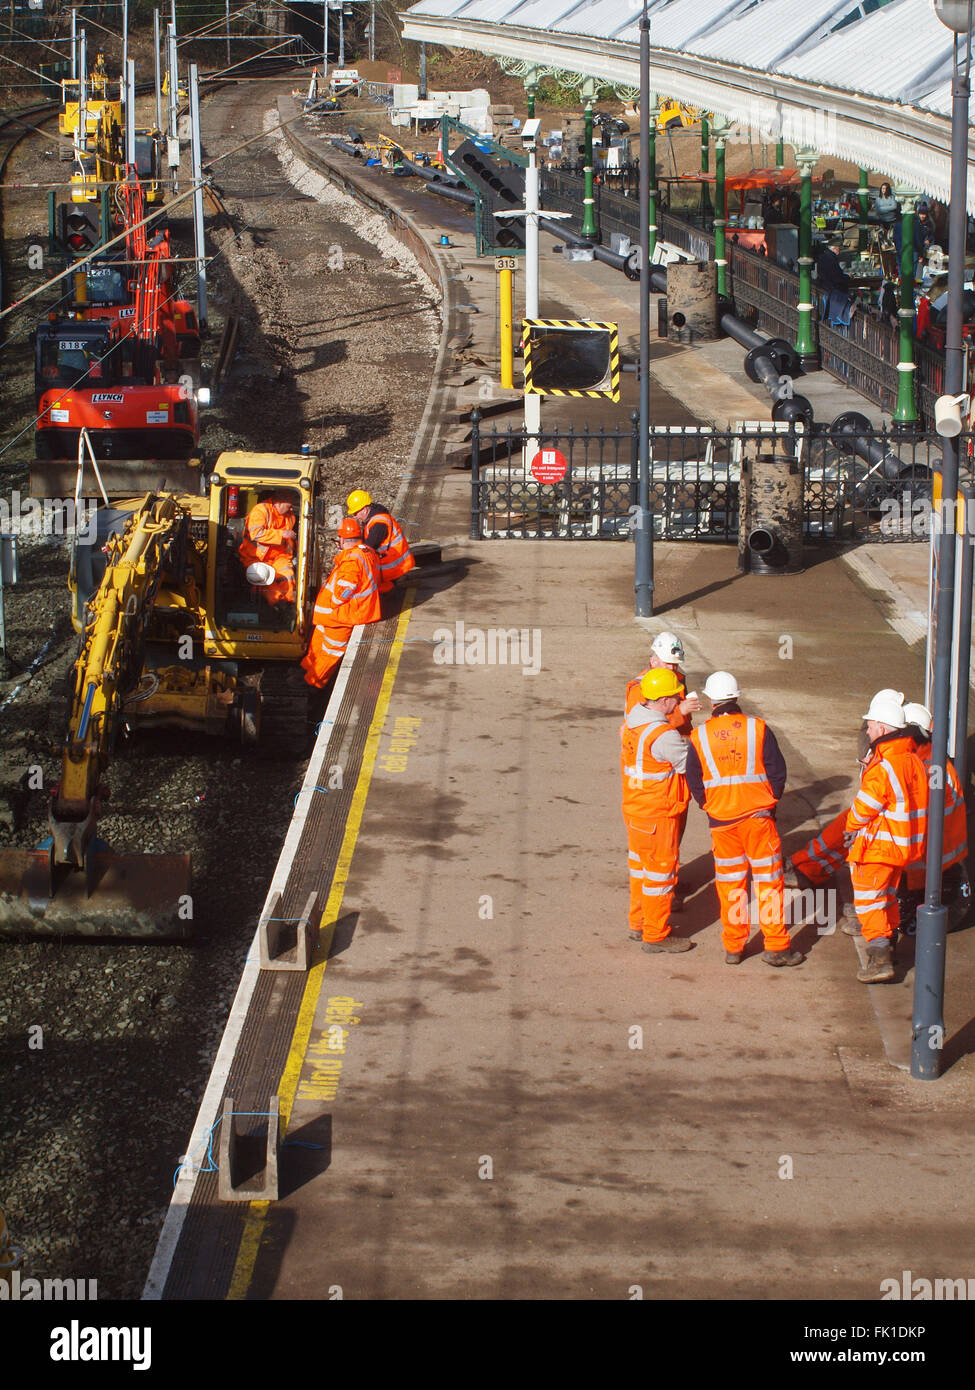 Newcastle Upon Tyne, Saturday 5th March 2016, Uk News. Sub contractors replacing railway tracks, ballast and drainage - Stock Image